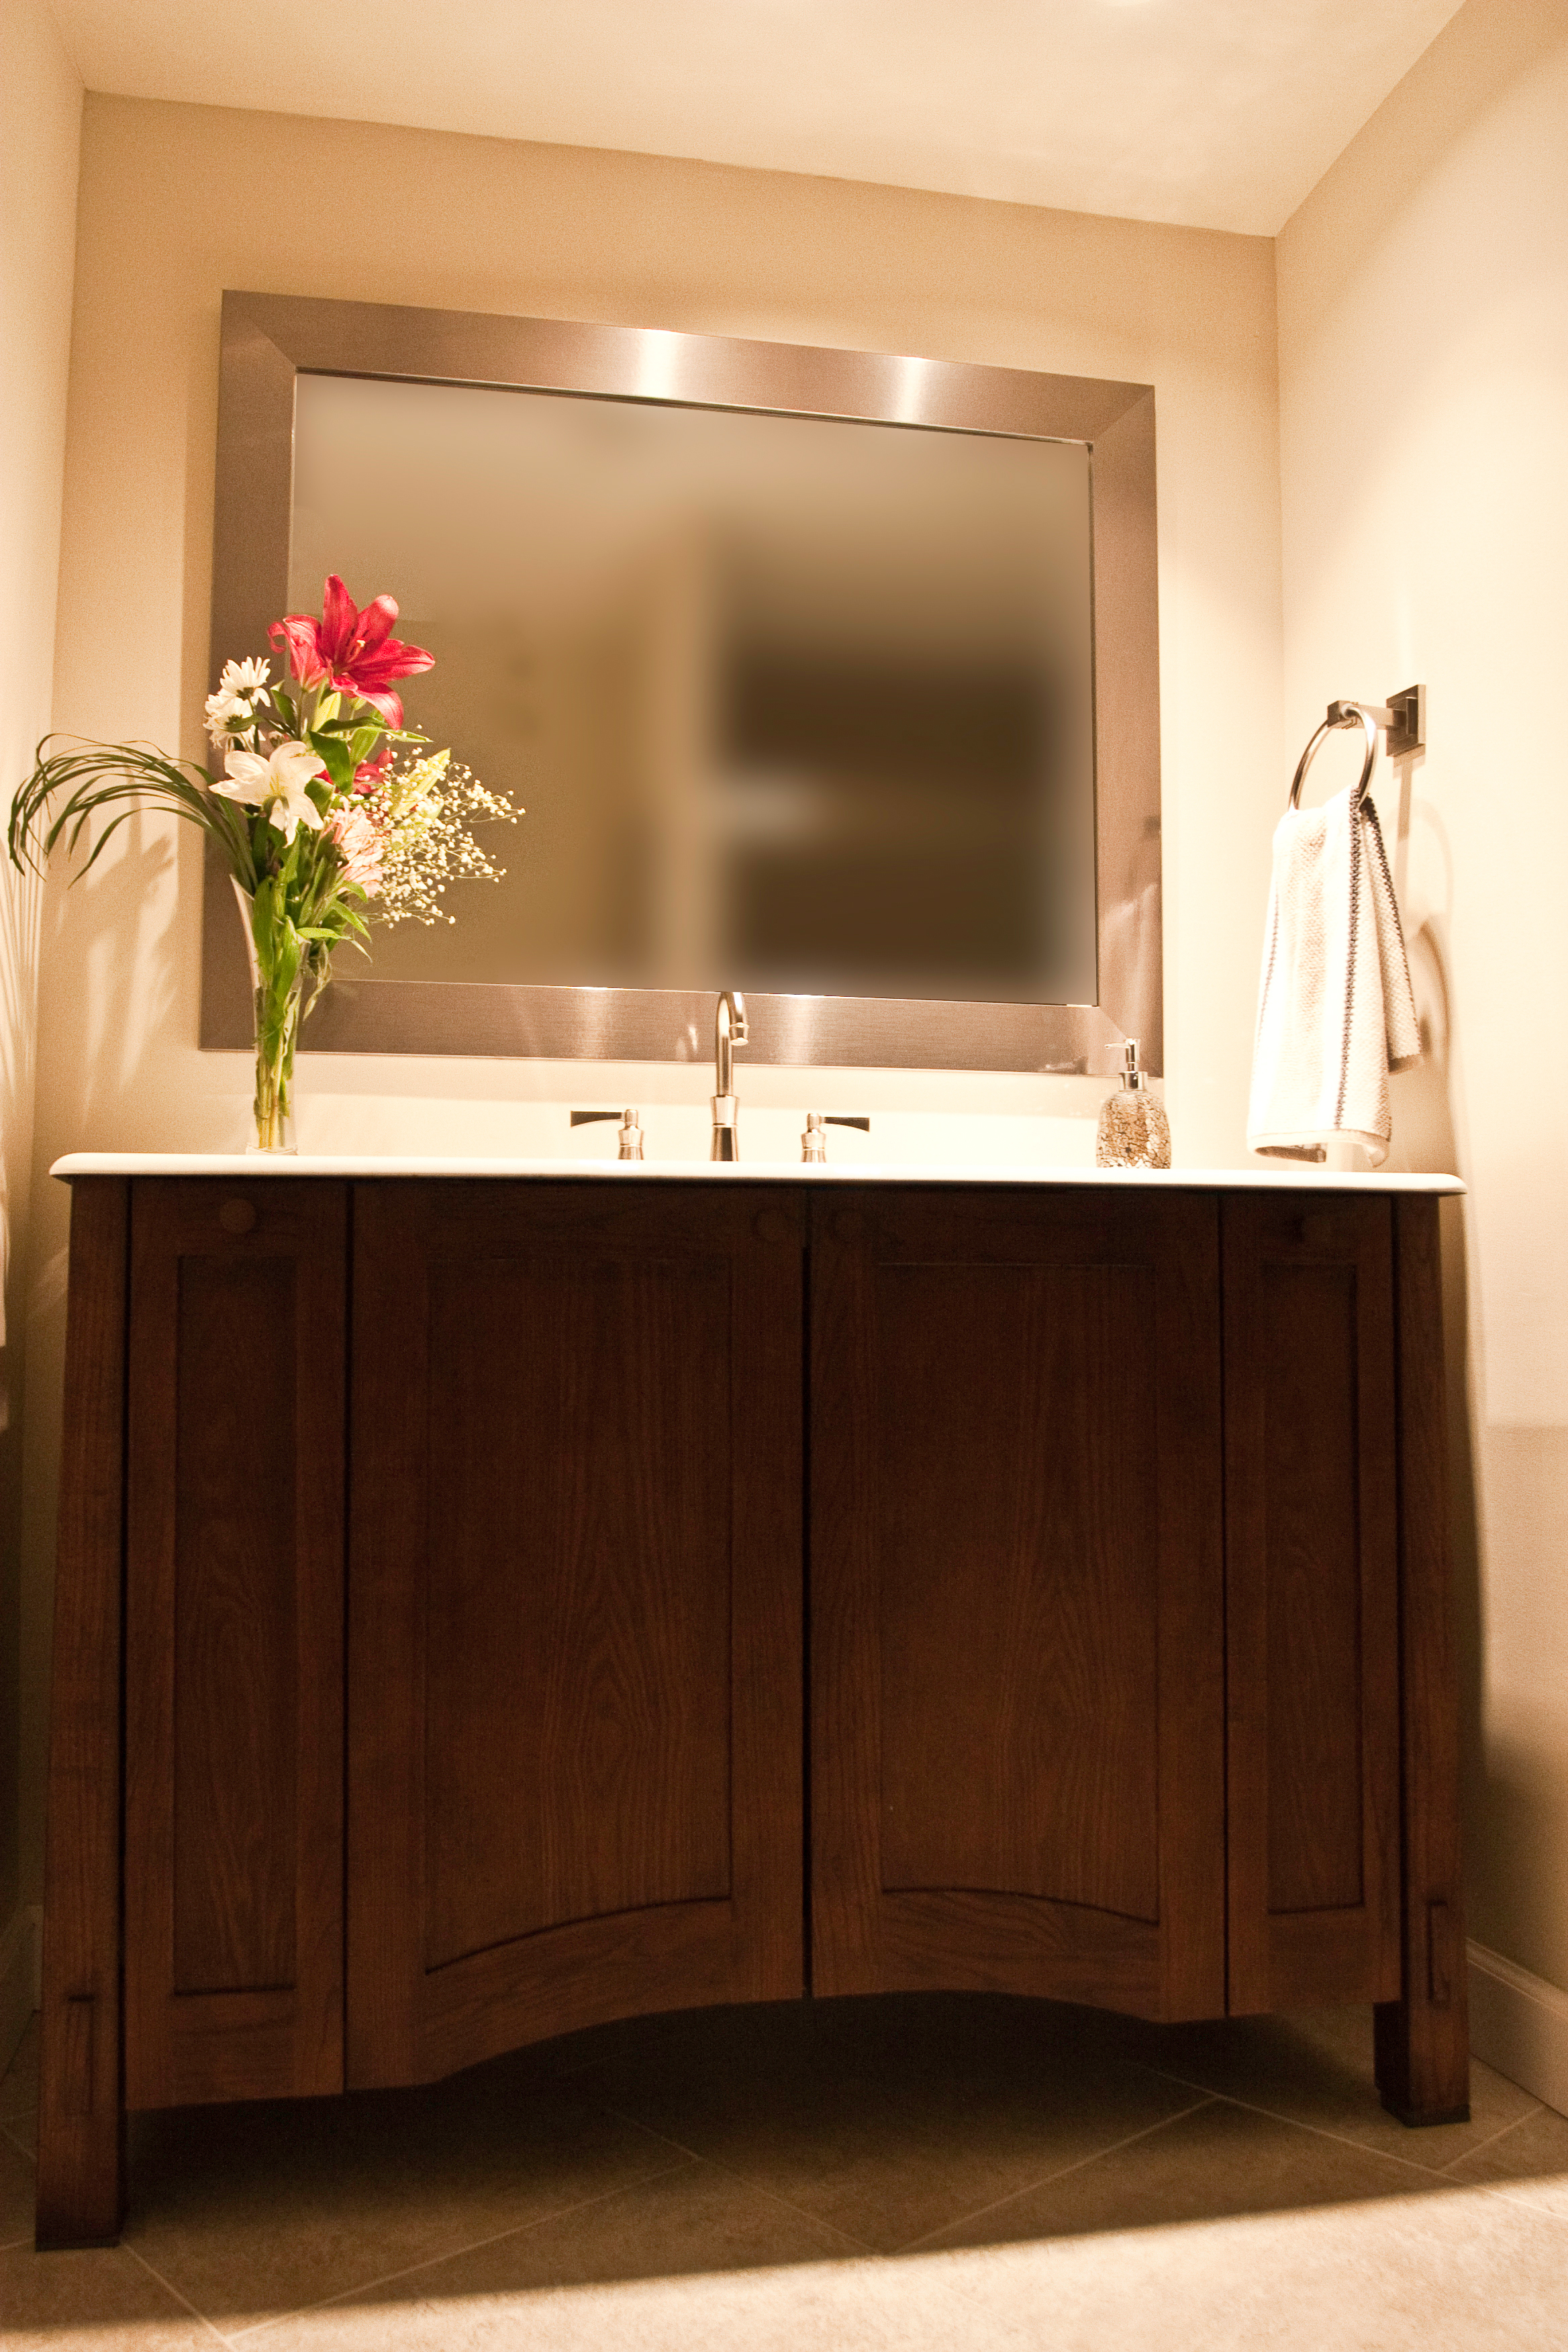 Kohler vanity, counter and faucet;